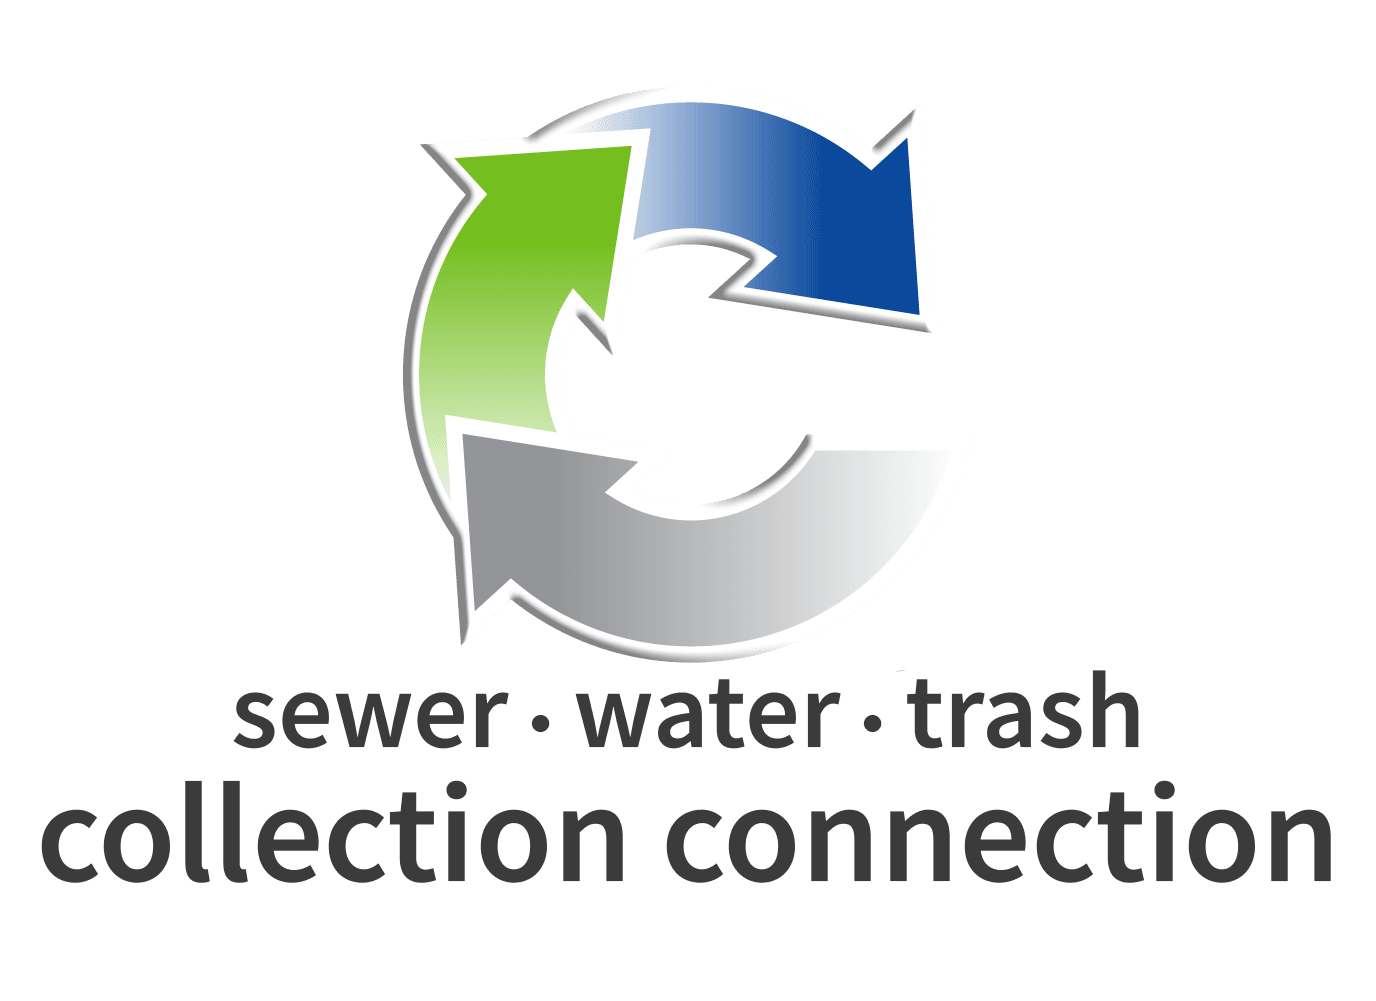 Collection Connection | Cranberry Township - Official Website